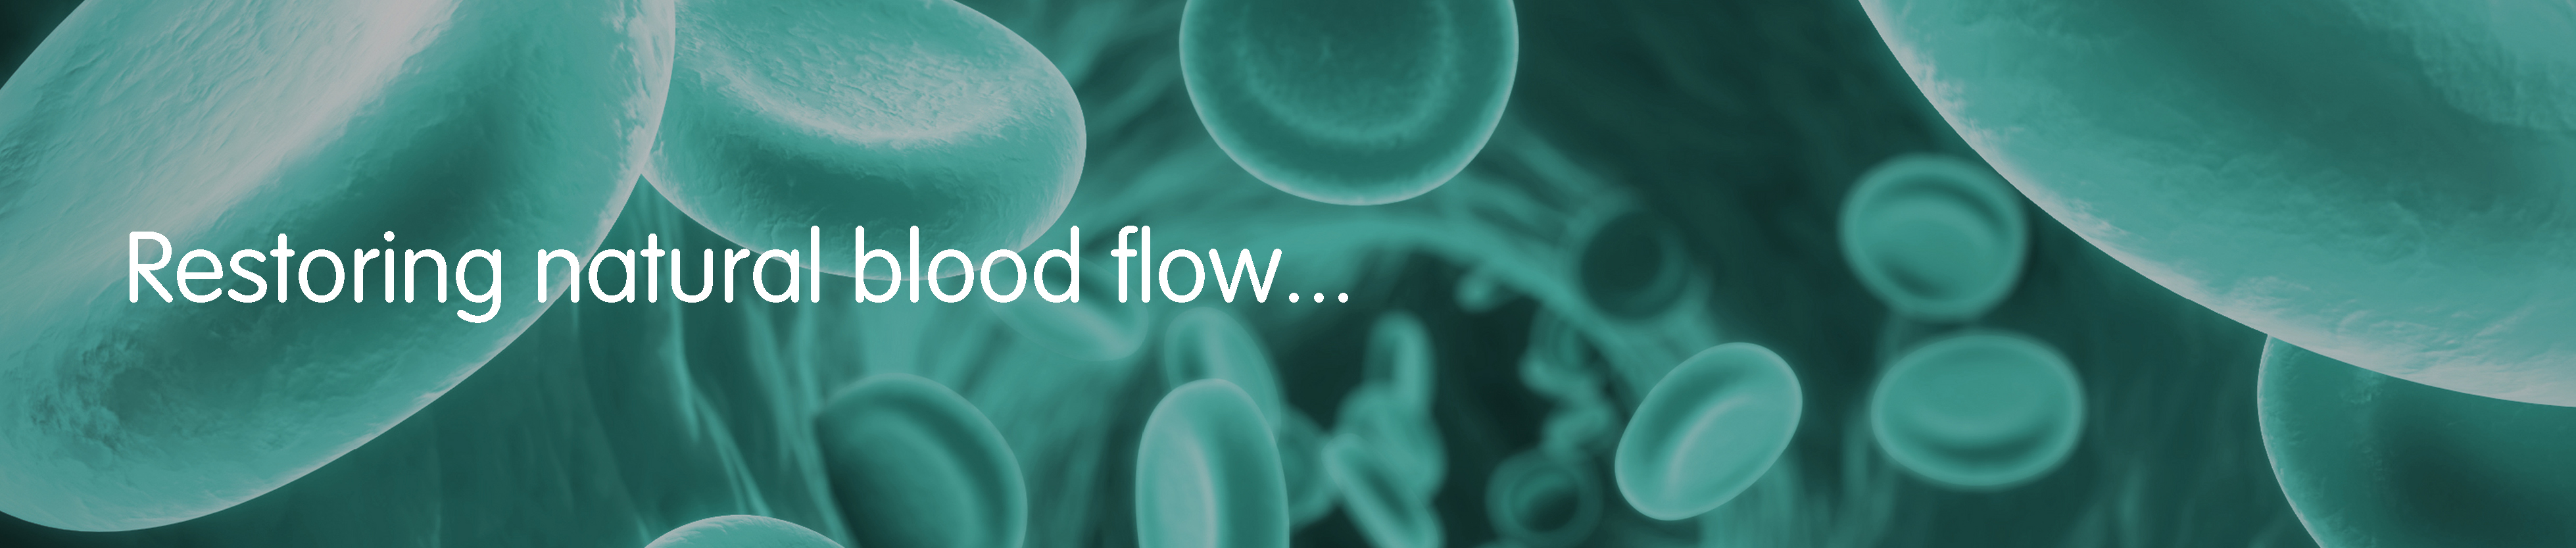 VASCULAR FLOW - WEBSITE BANNERS - GREEN BLOOD CELLS - RESTORING NATURAL BLOOD FLOW